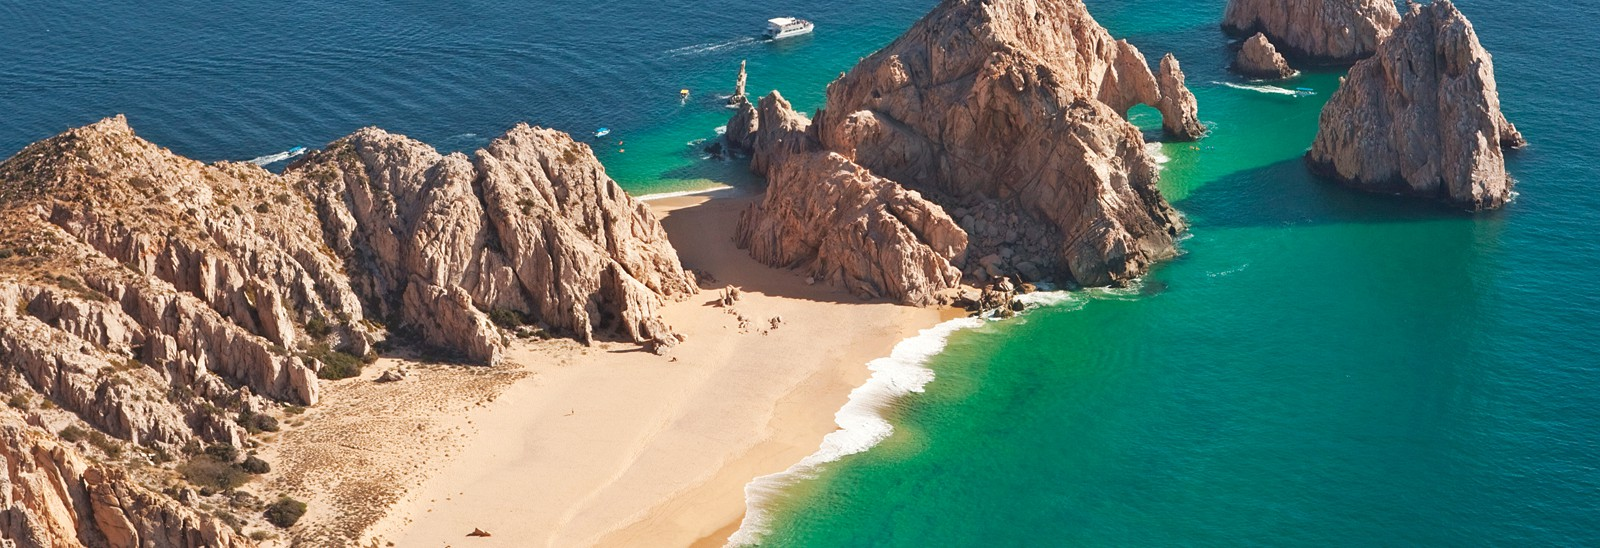 Why Los Cabos is one of Mexico's top destinations